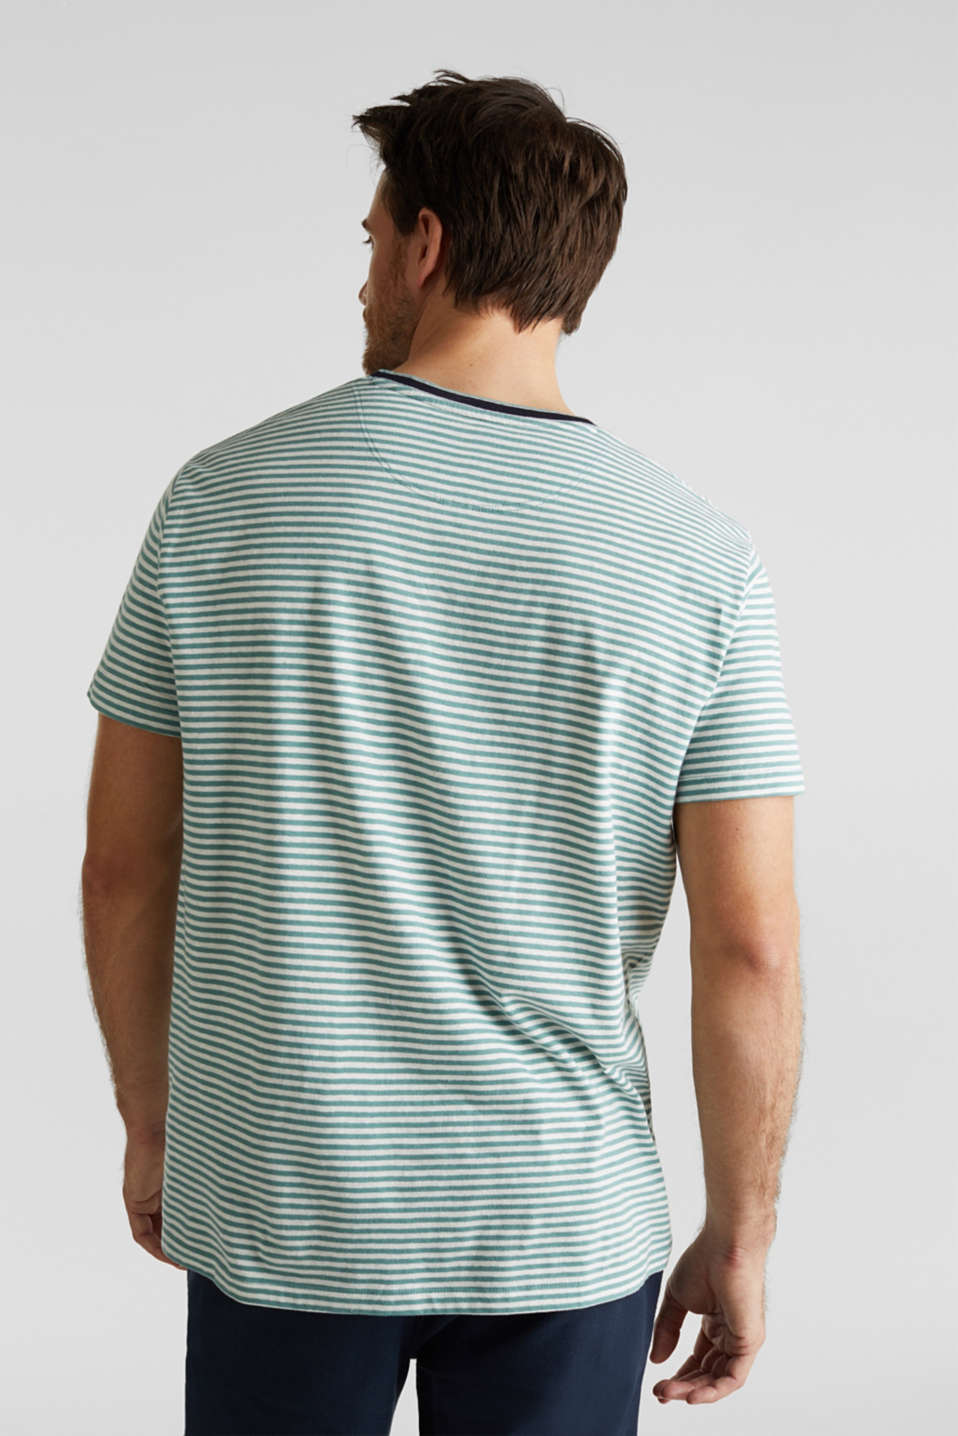 With linen: Jersey top with a pocket, TEAL GREEN 3, detail image number 3